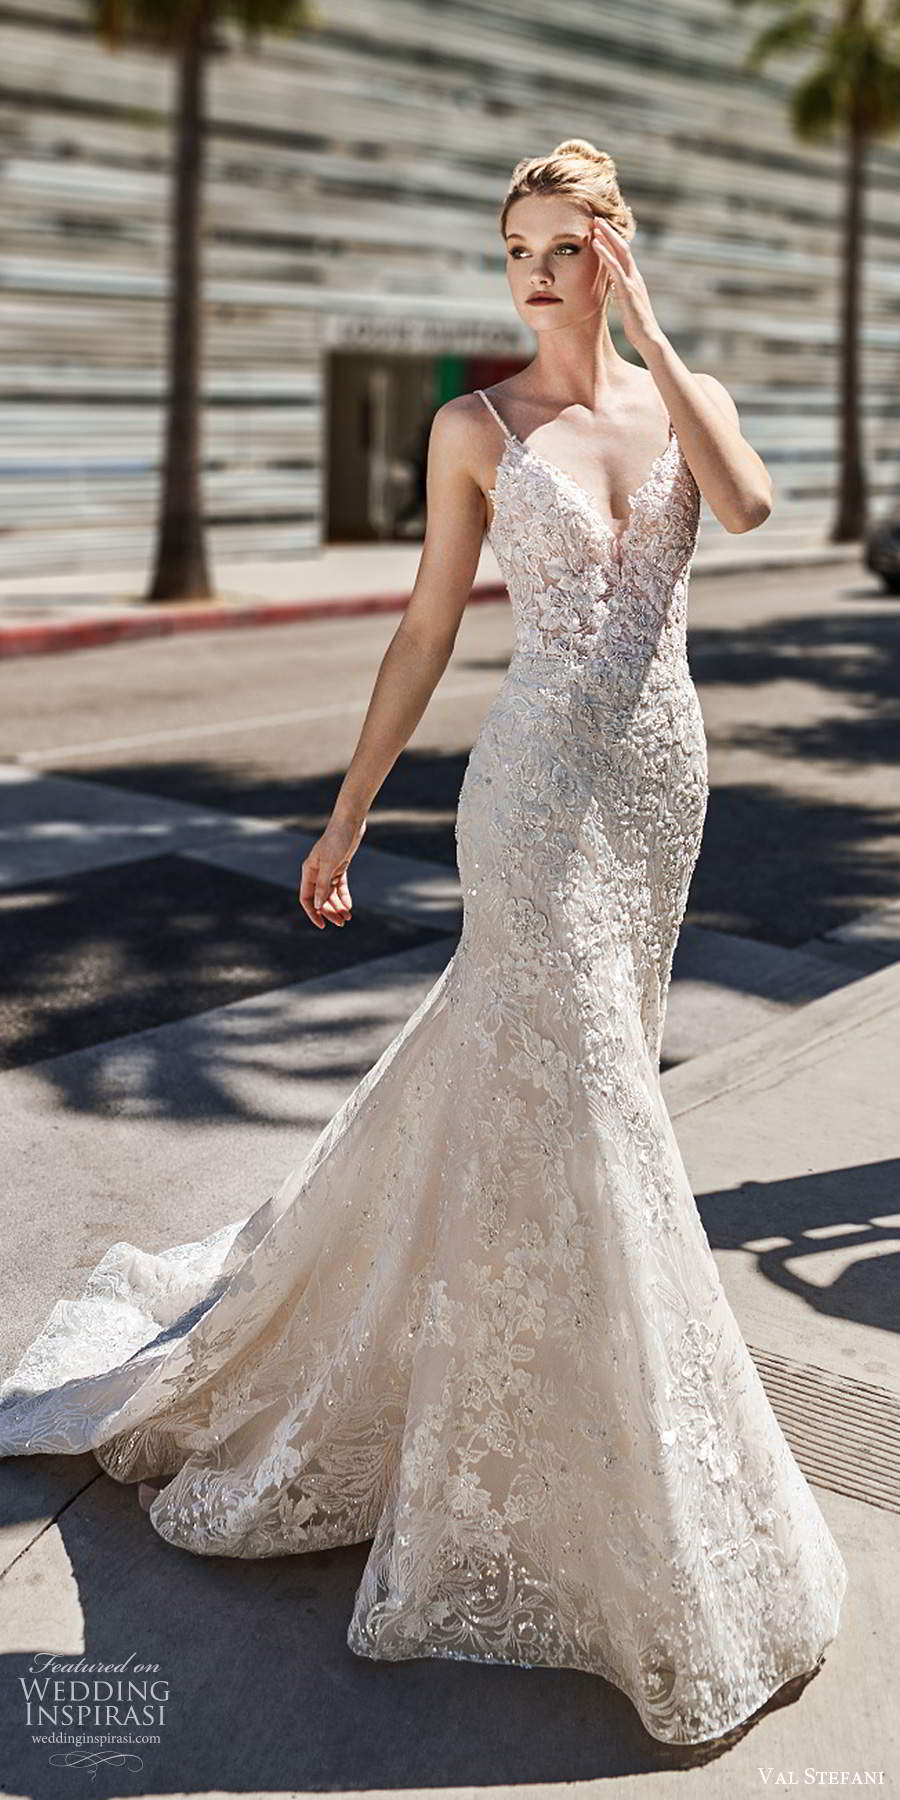 val stefani spring 2020 bridal sleeveless thin straps v neckline fully embellished lace fit flare trumpet a line wedding dress scoop back chapel train (4) mv